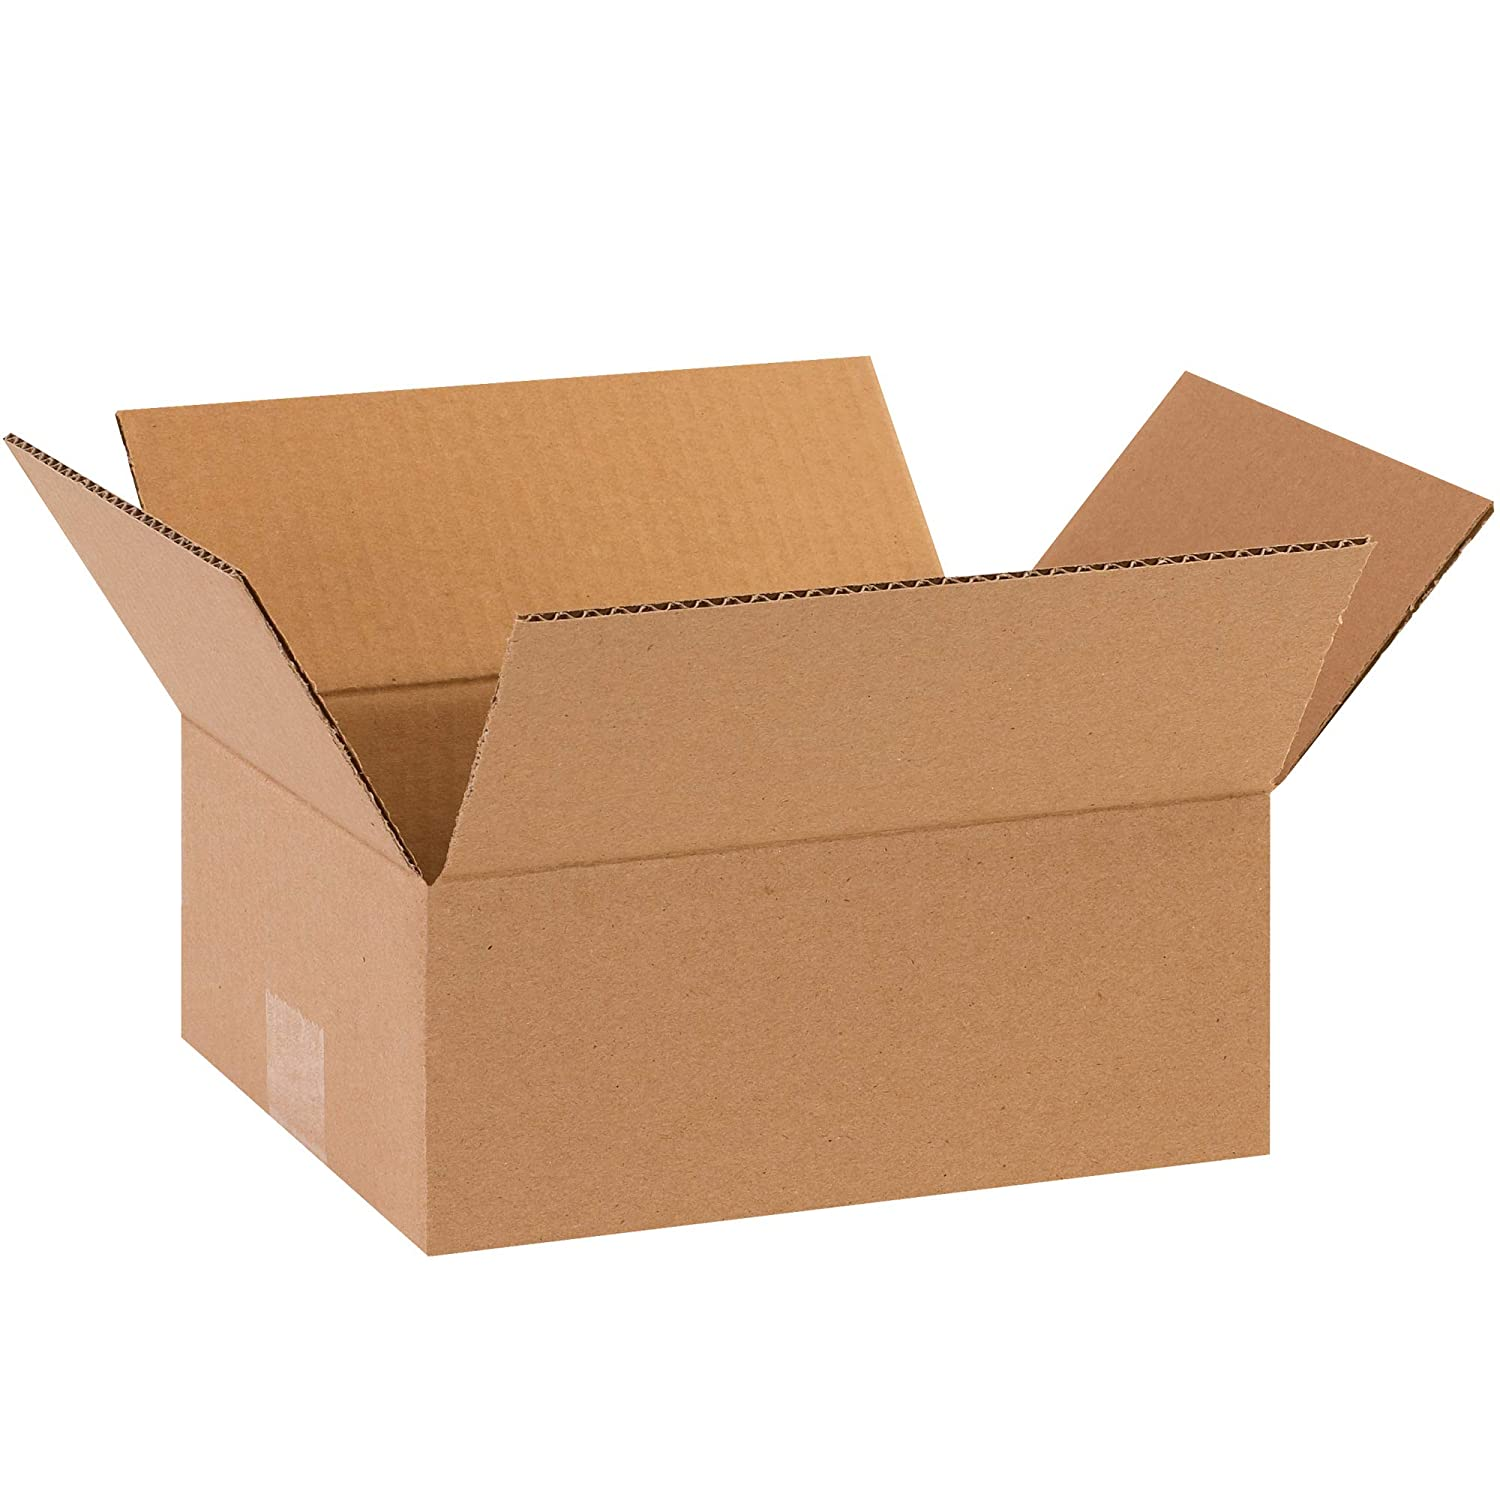 70% OFF Outlet Aviditi Corrugated Cardboard Special sale item Flat Storage Boxes 9